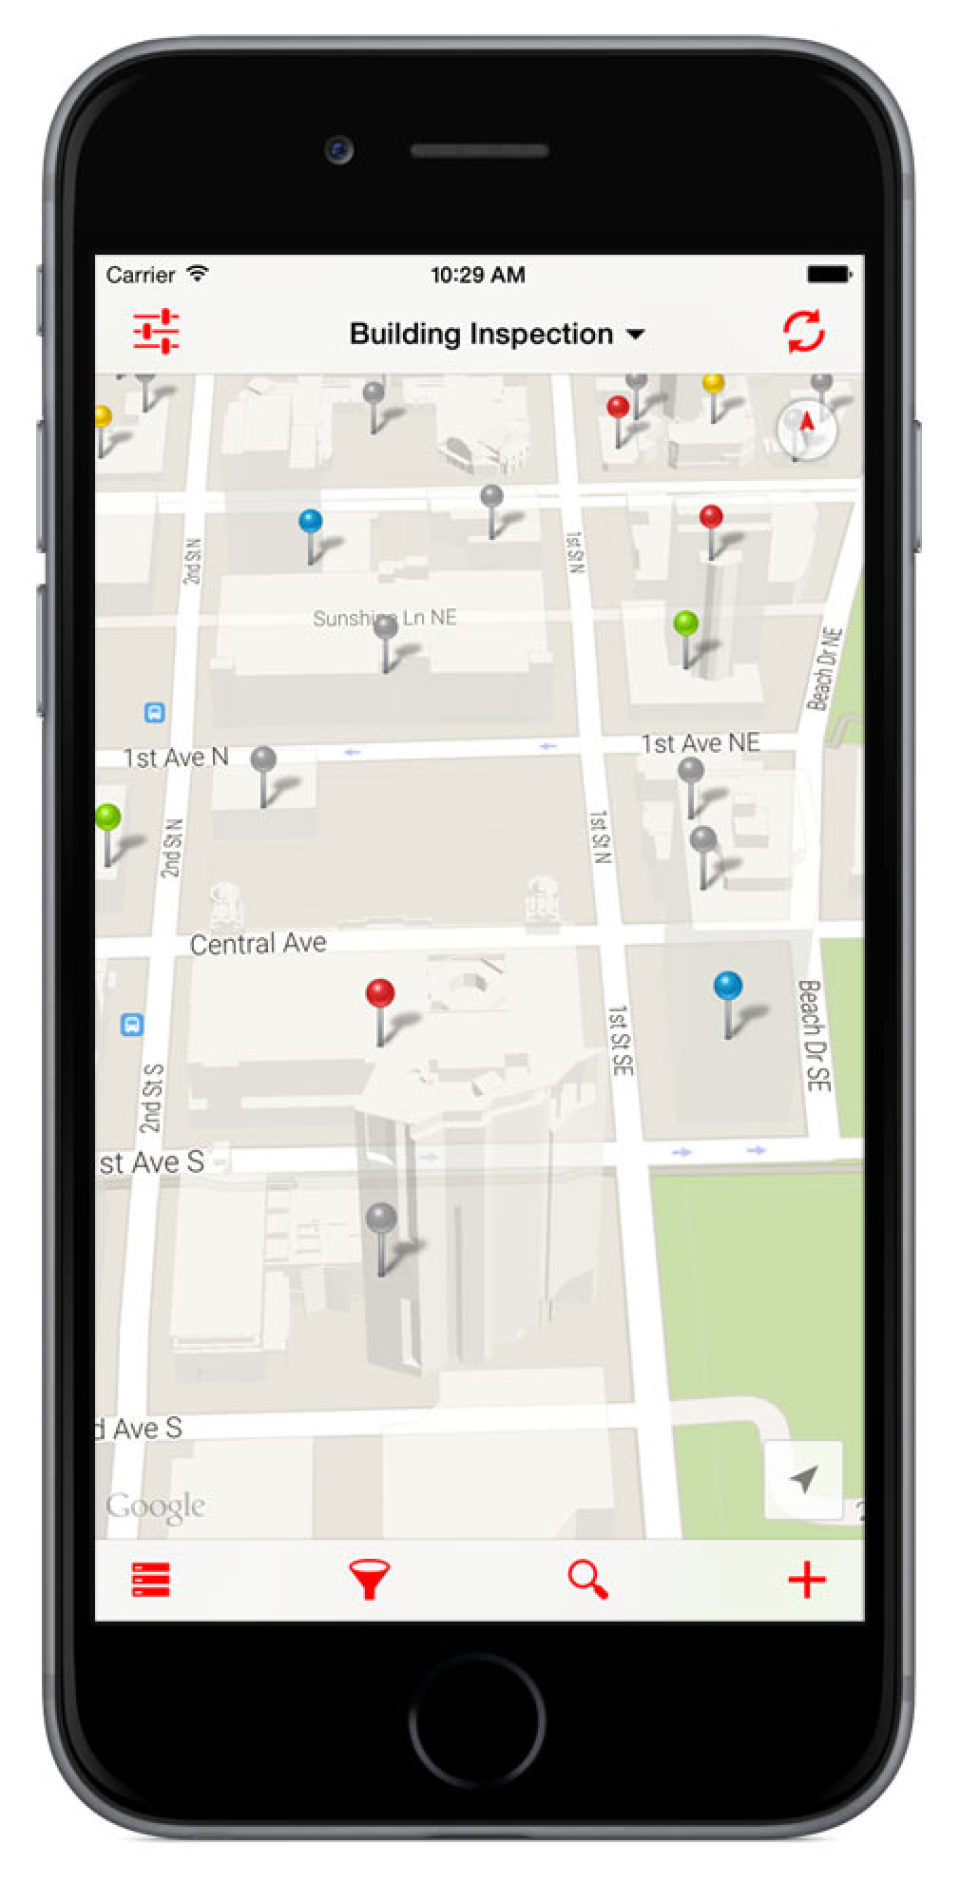 All data captured is automatically tagged with GPS locations for mapping